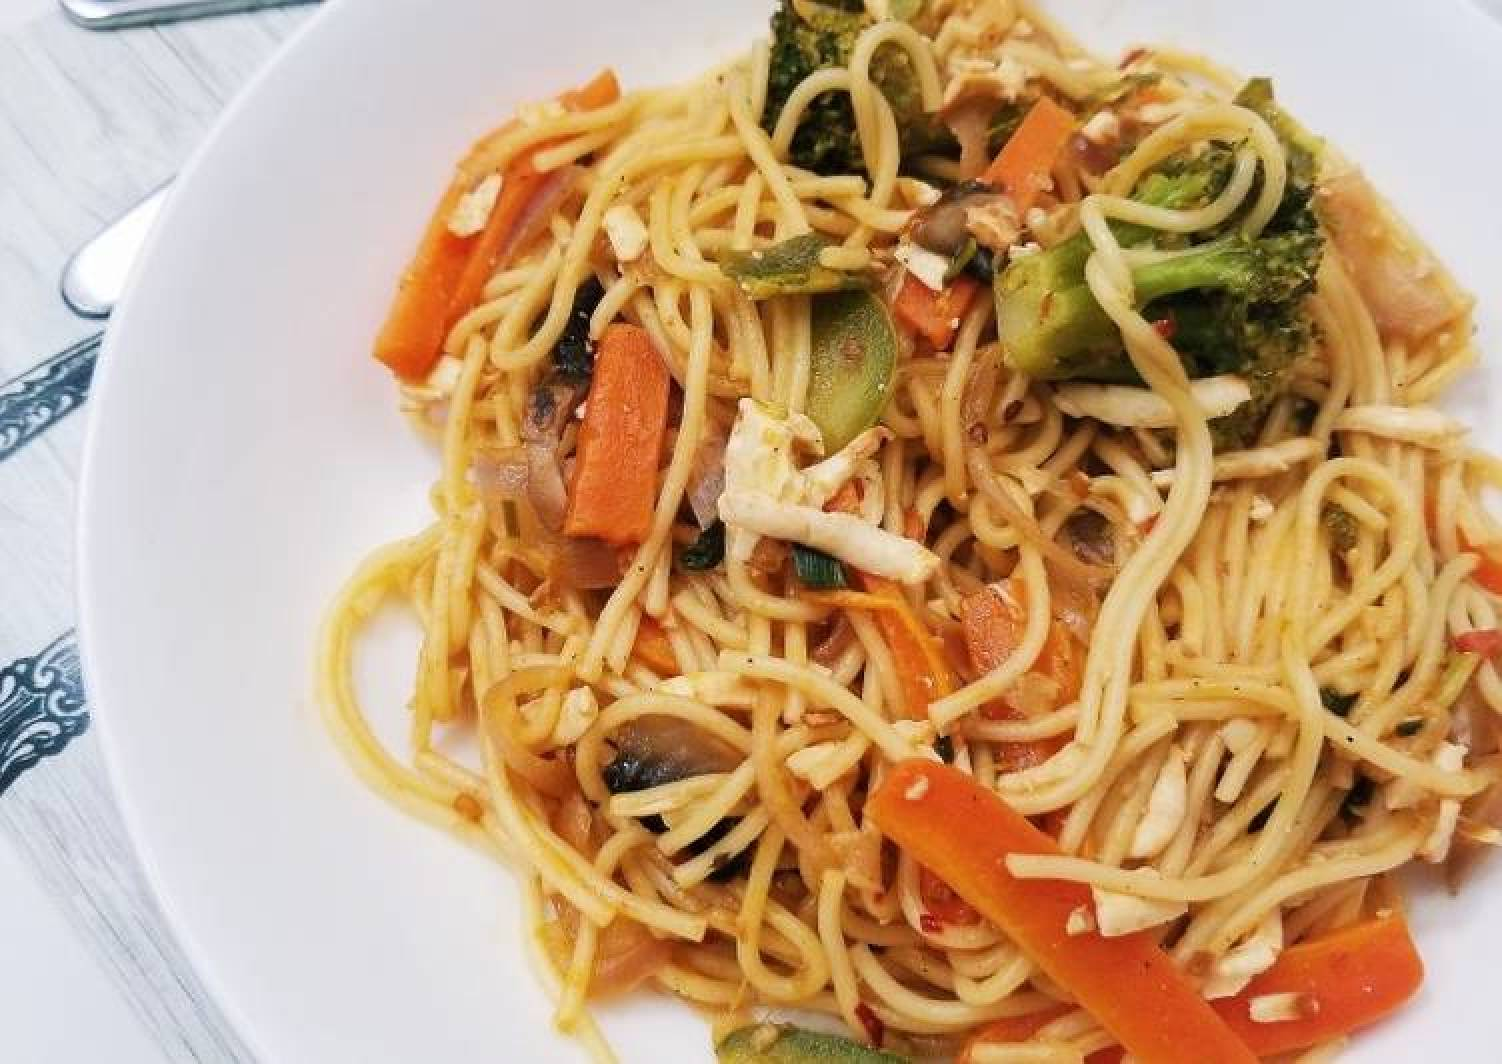 Stir fried noodles with paneer